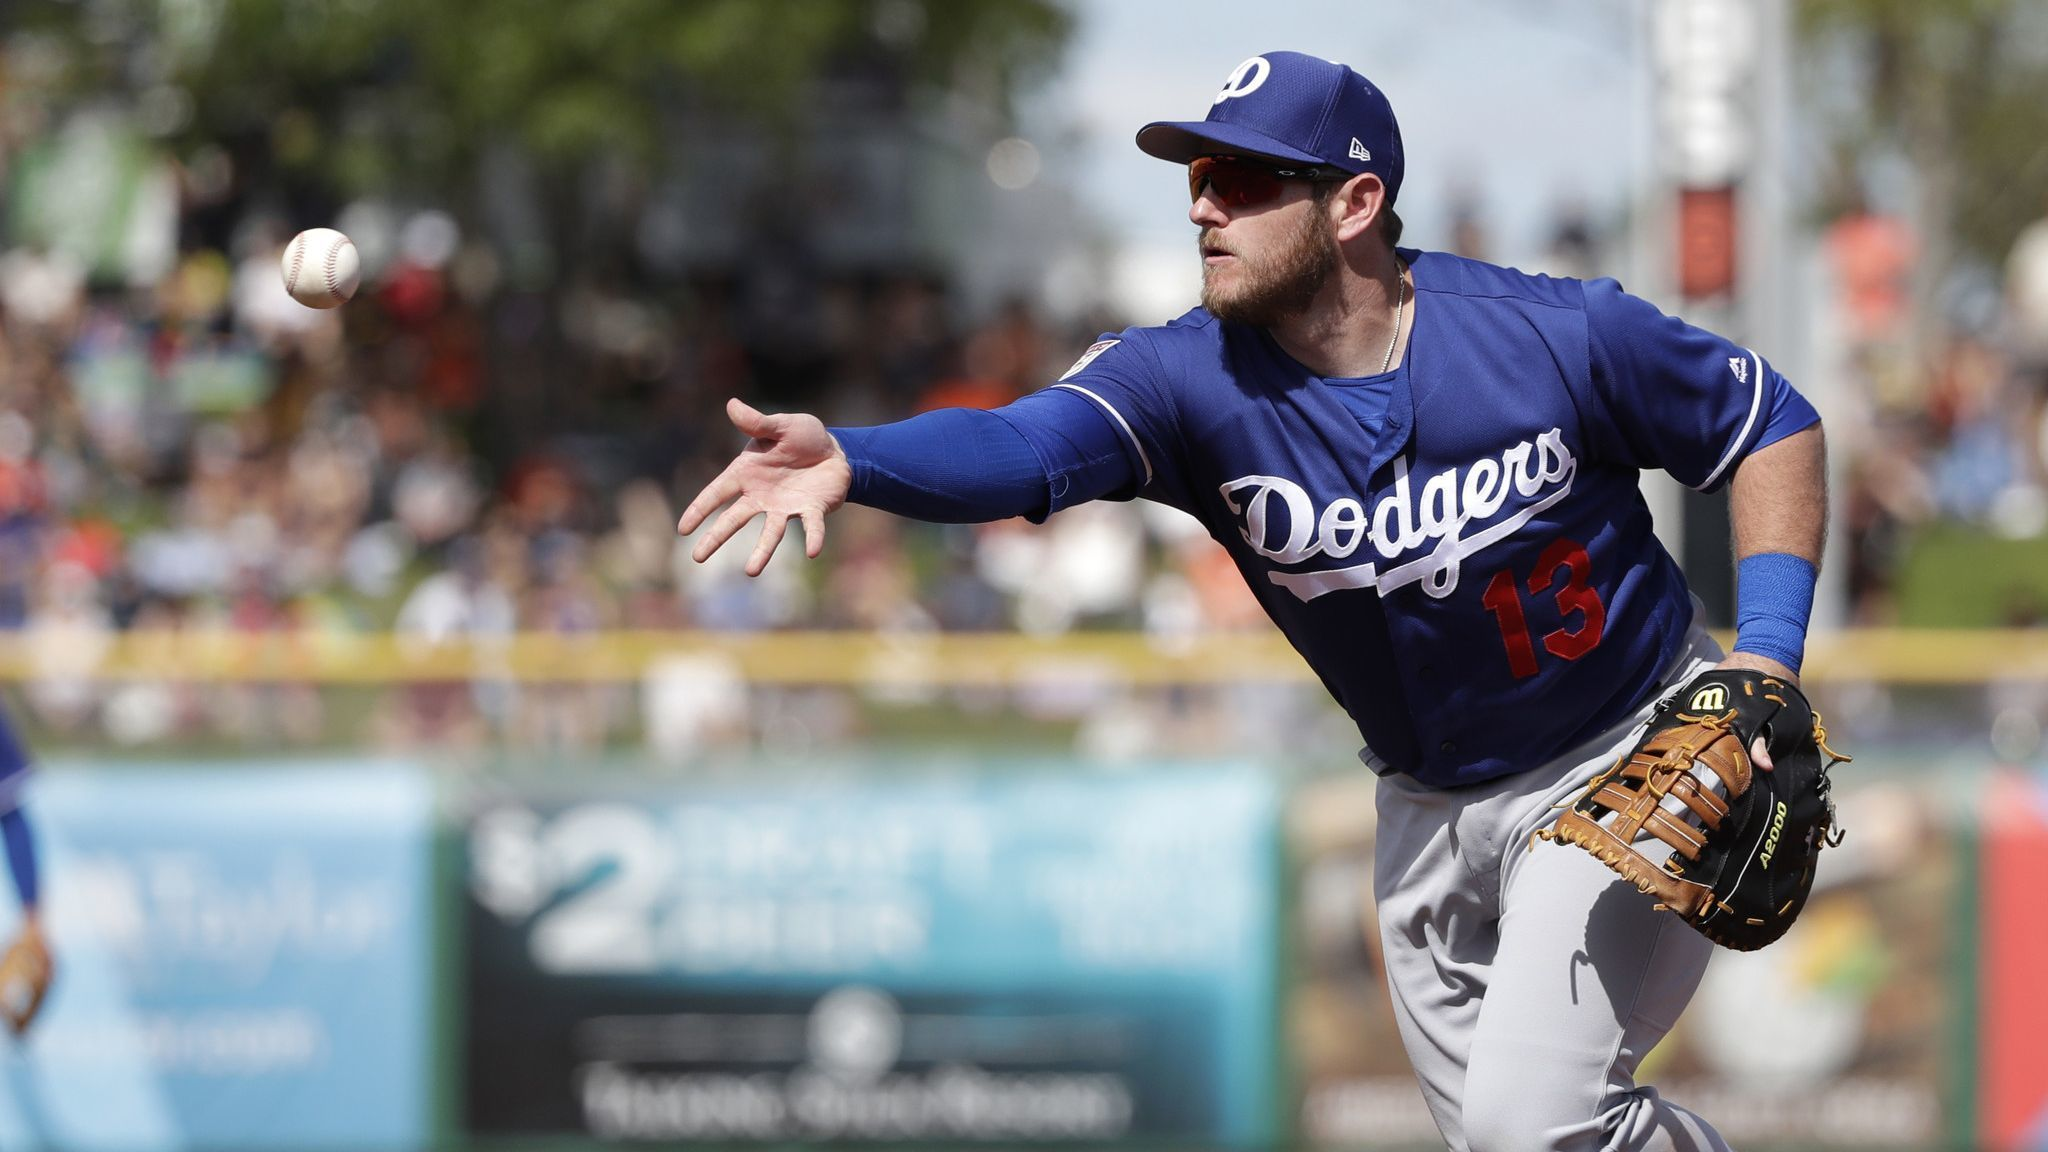 Dodgers lose 3-1 to Rangers in exhibition game